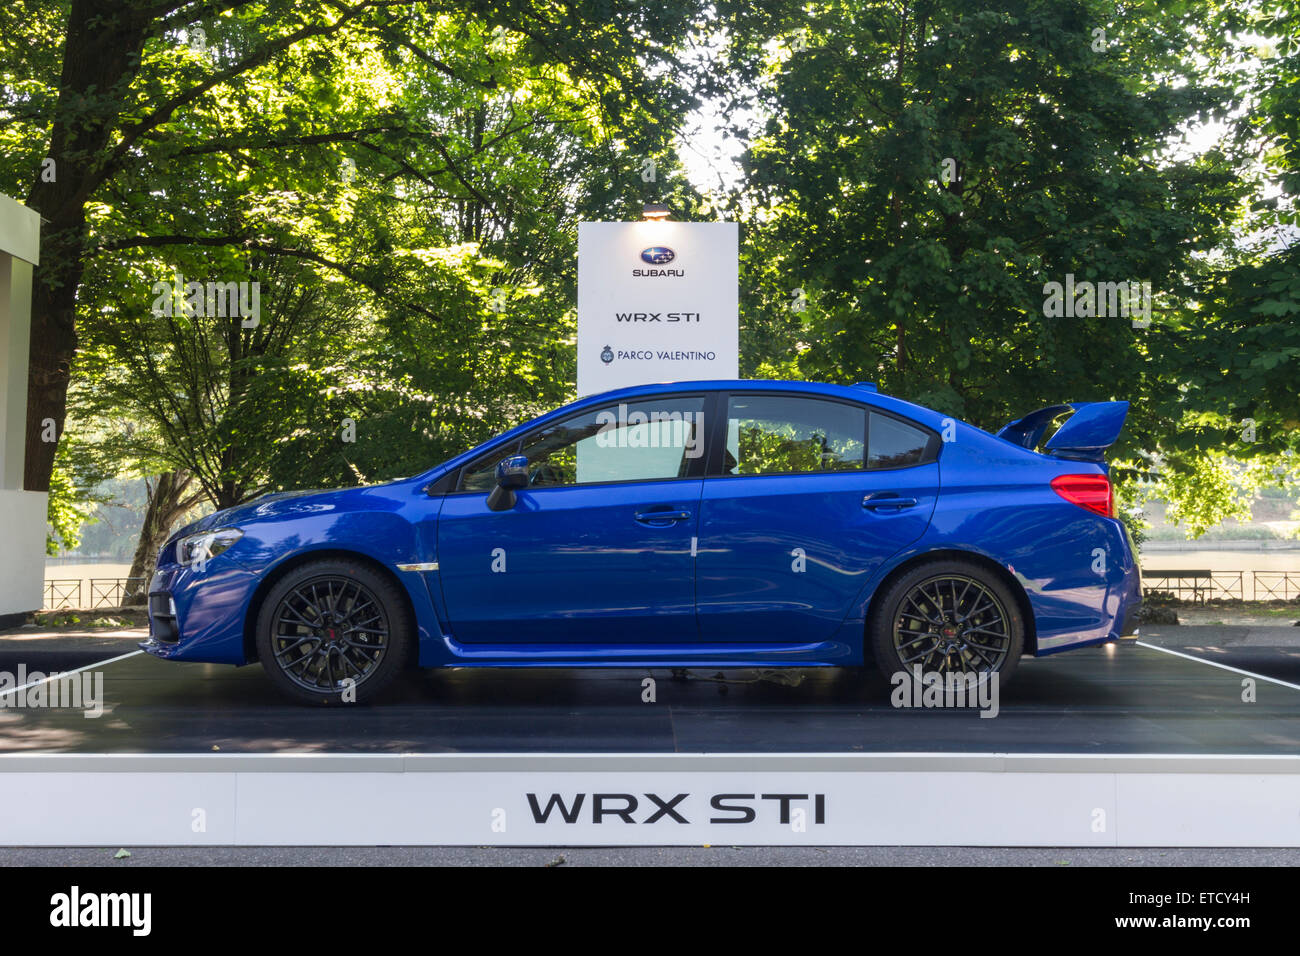 Side View Of Subaru Wrx Sti Parco Valentino Car Show Hosted 93 Cars